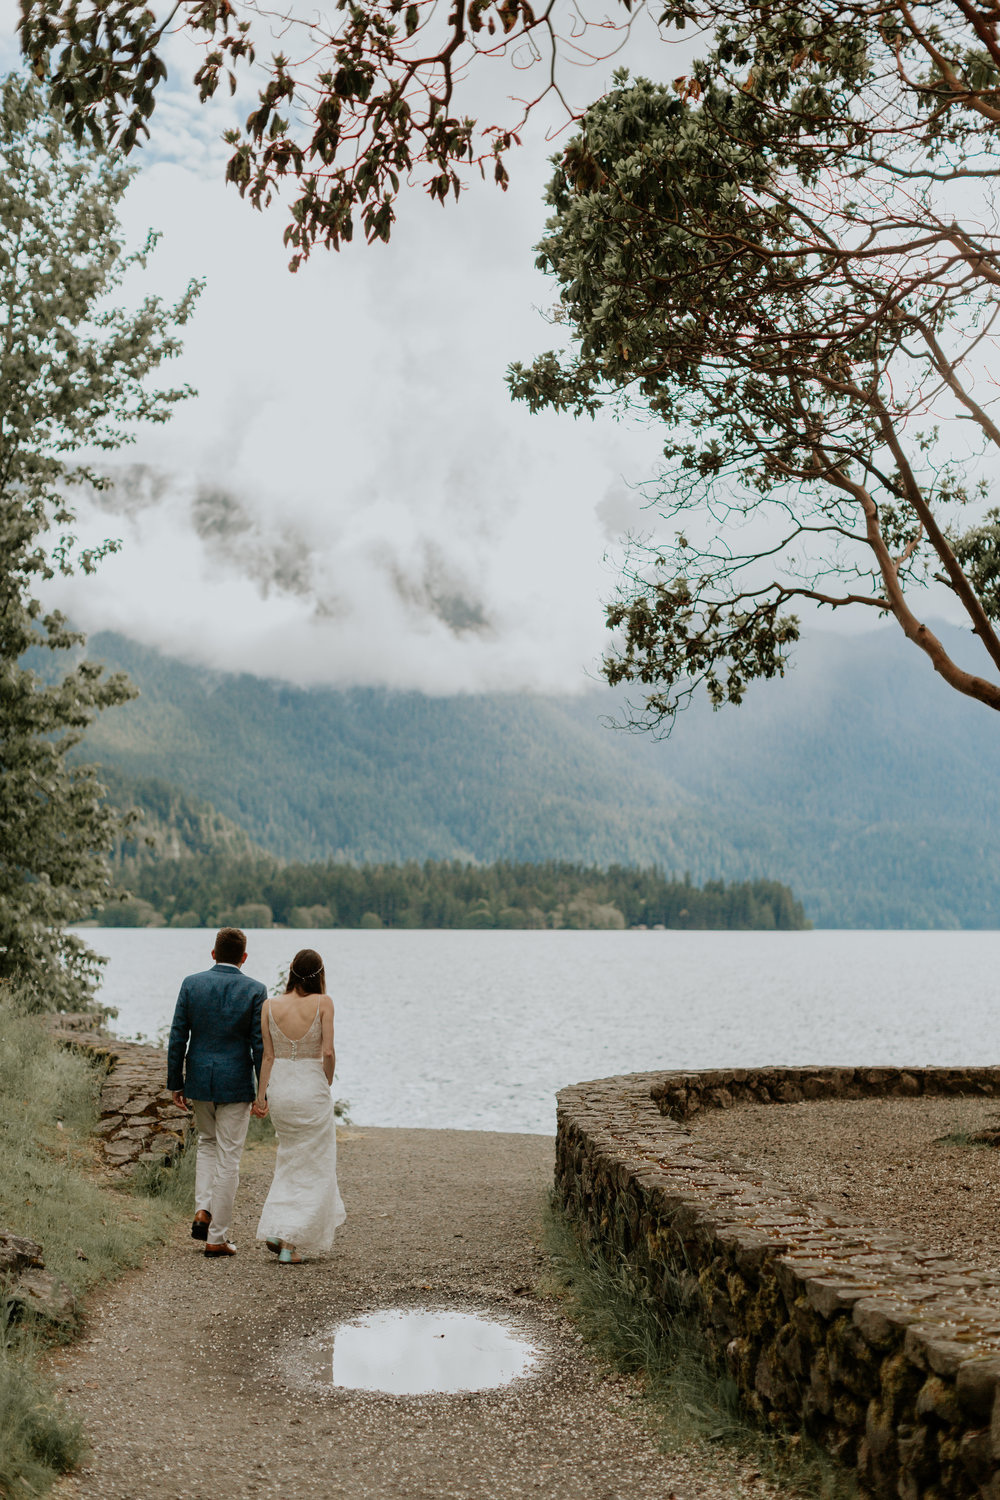 PNW-elopement-wedding-engagement-olympic national park-port angeles-hurricane ridge-lake crescent-kayla dawn photography- photographer-photography-kayladawnphoto-225.jpg